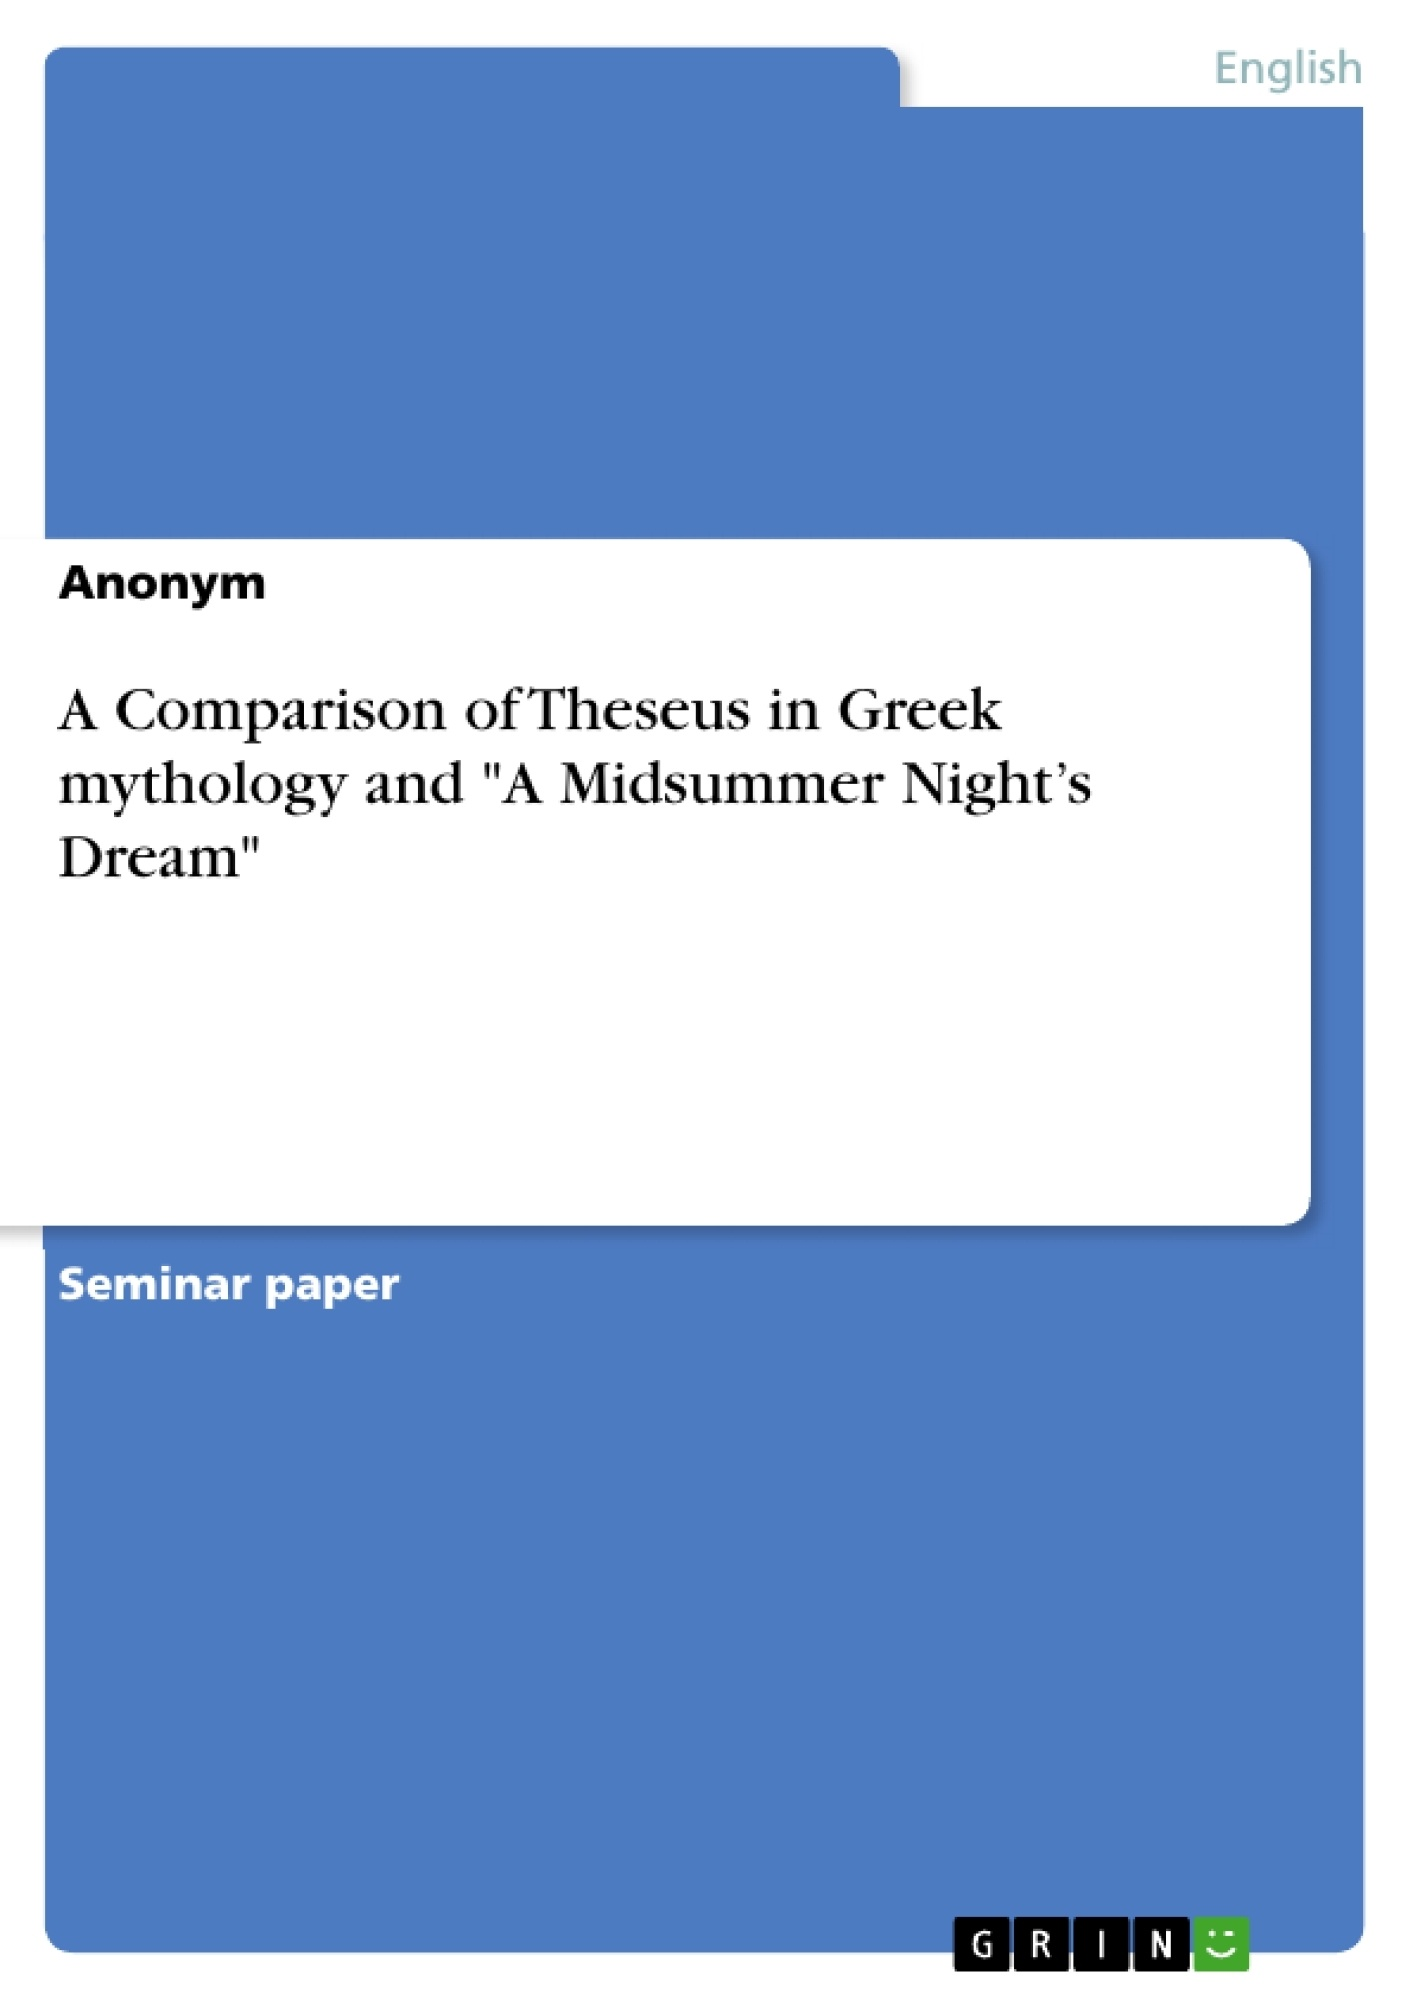 greek mythology essays siren song margaret atwood essay medea  a comparison of theseus in greek mythology and a midsummer a comparison of theseus in greek